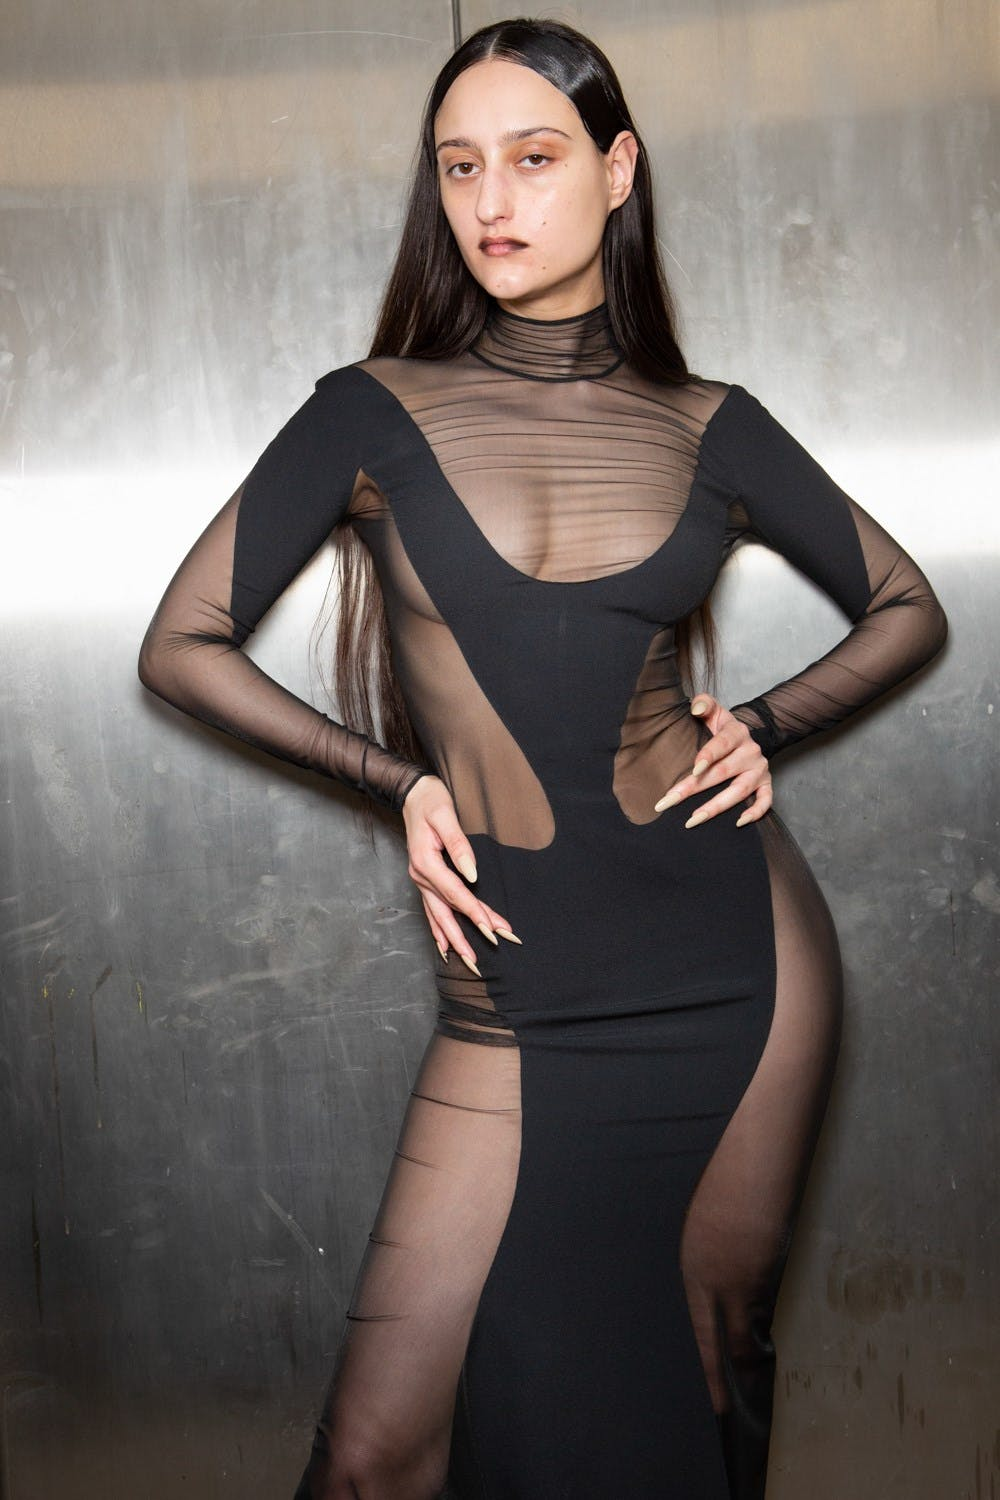 FASHION IS HAVING A FETISH MOMENT: THIERRY MUGLER